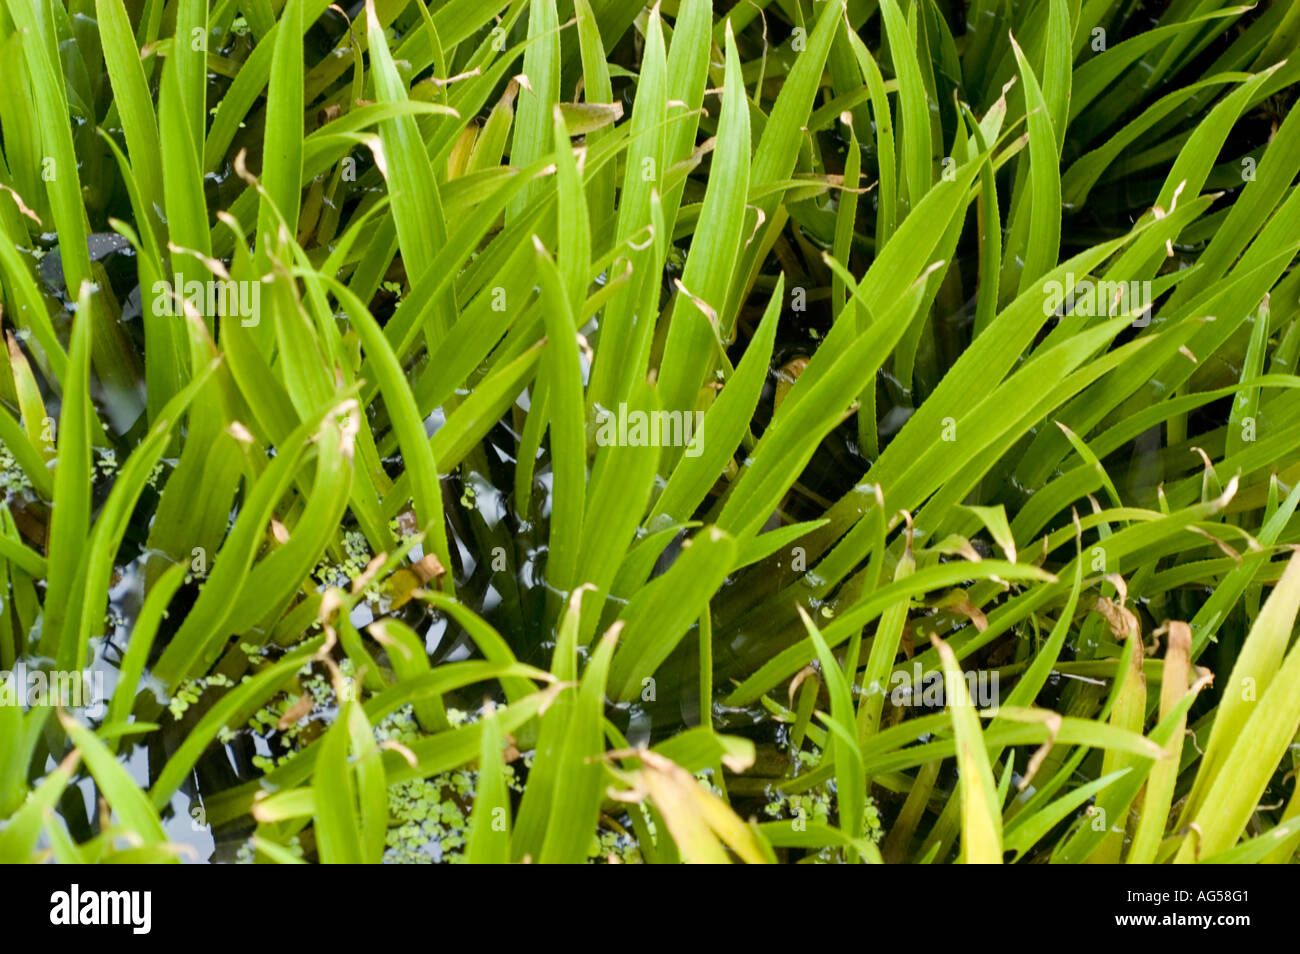 water soldiers Hydrocharitaceae Stratiotes aloides Europe - Stock Image